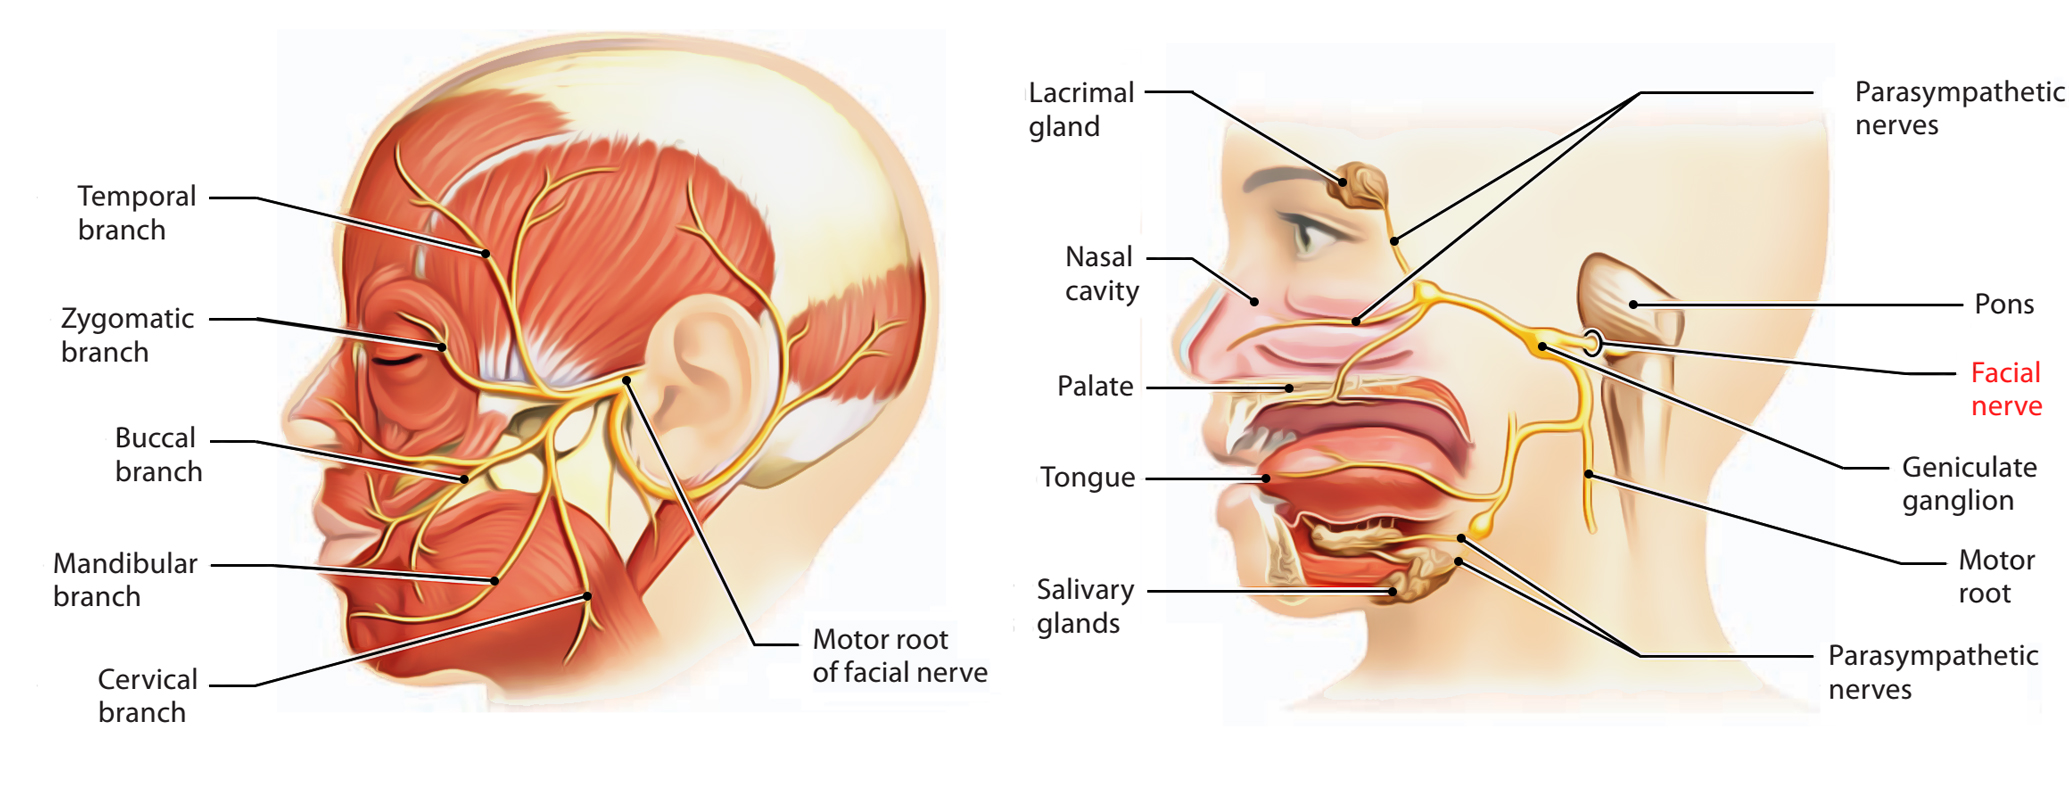 Facial nerve that